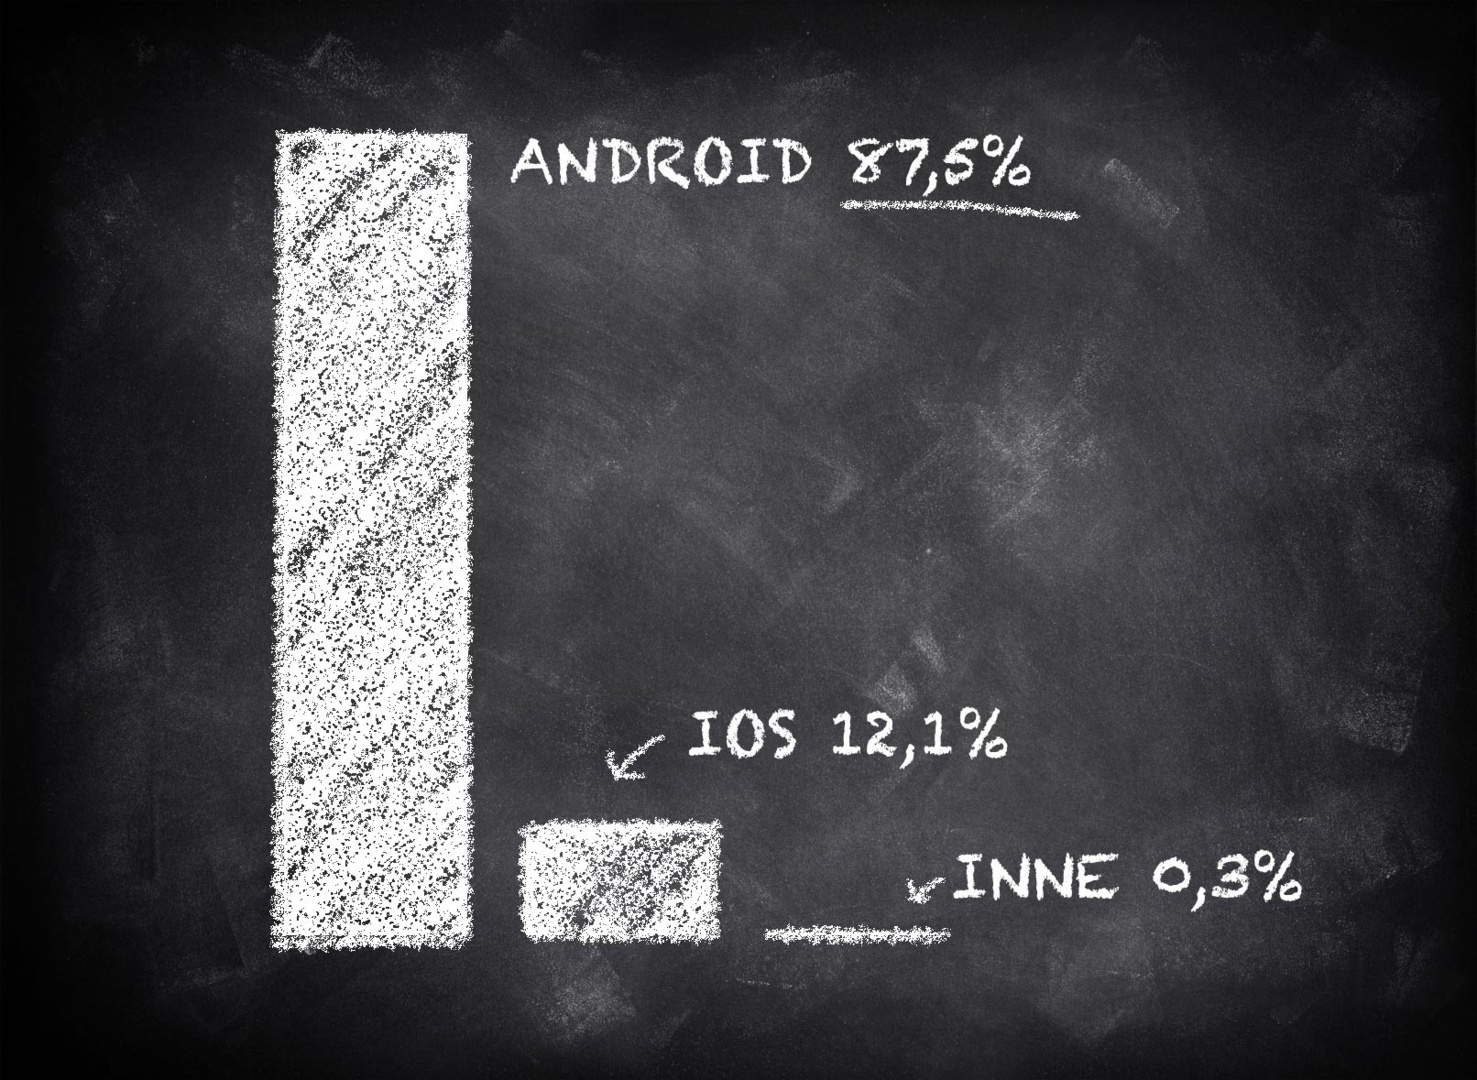 Android has 88%, and iOS 12% market share of the smartphone market. Only those two systems still matter.